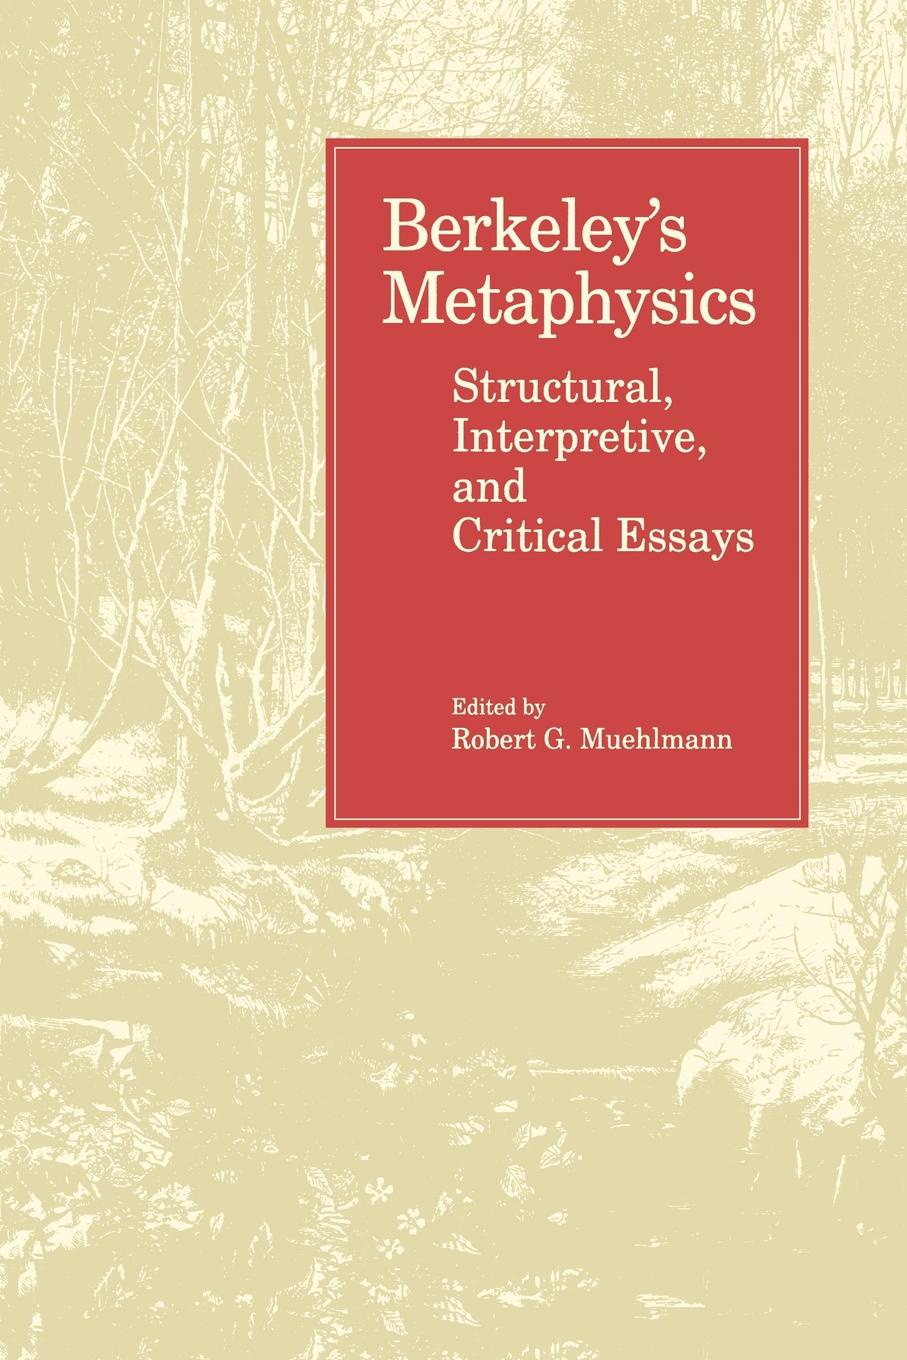 Berkeley's Metaphysics. Structural, Interpretive, and Critical Essays motivation and action